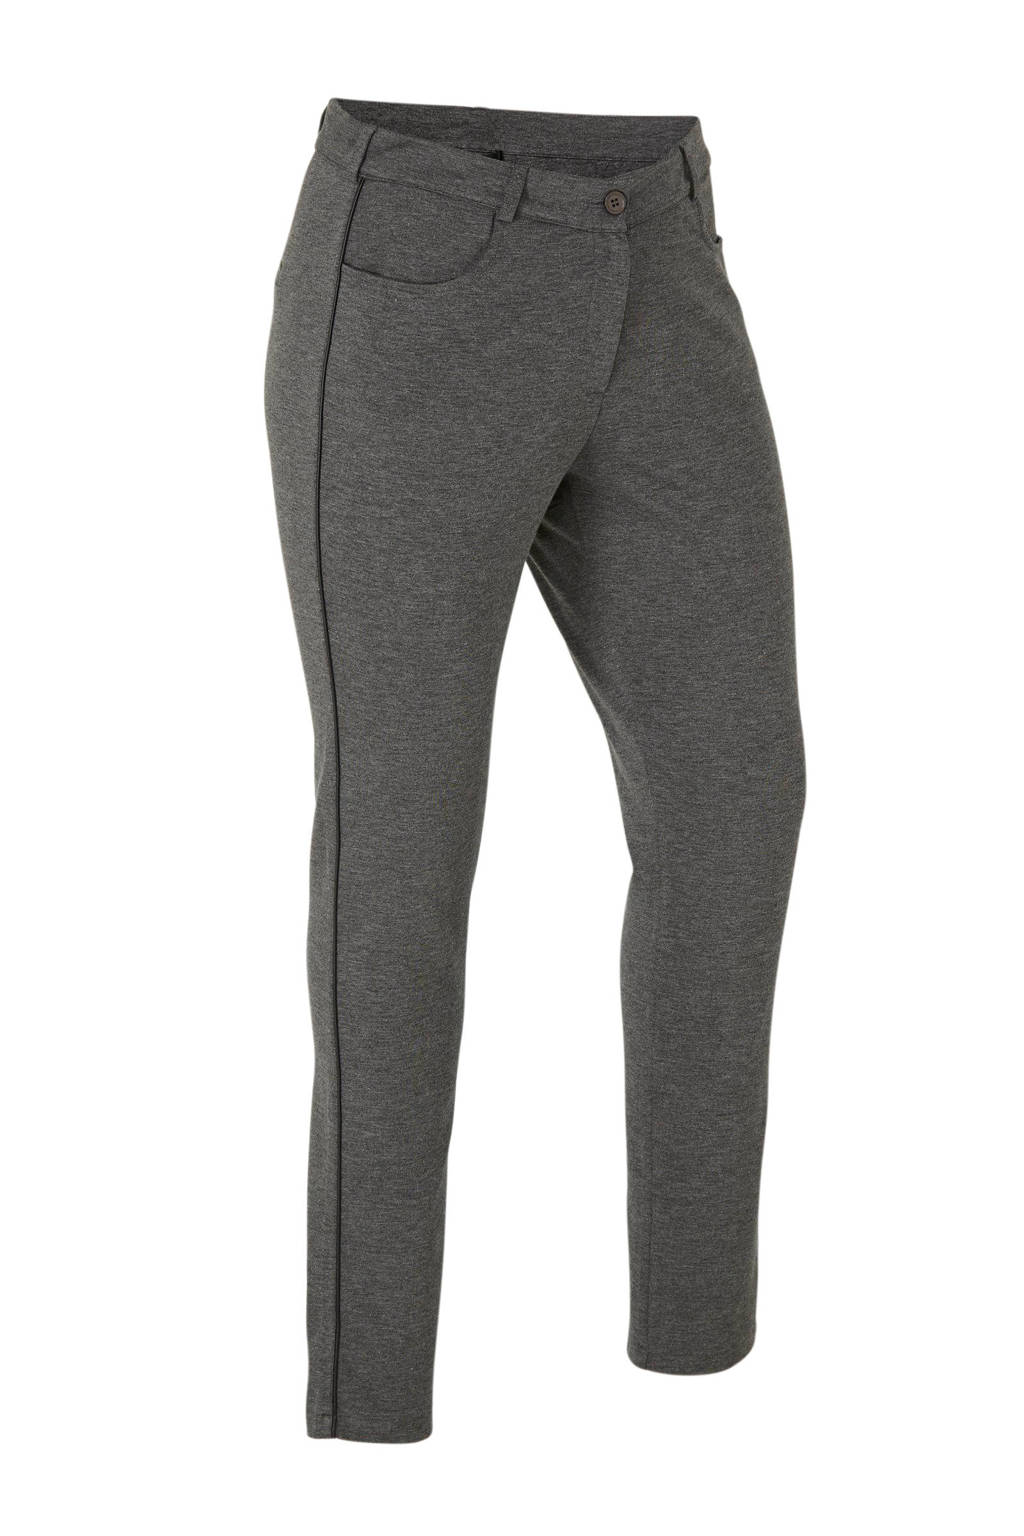 No Secret slim fit broek grijs, Grijs